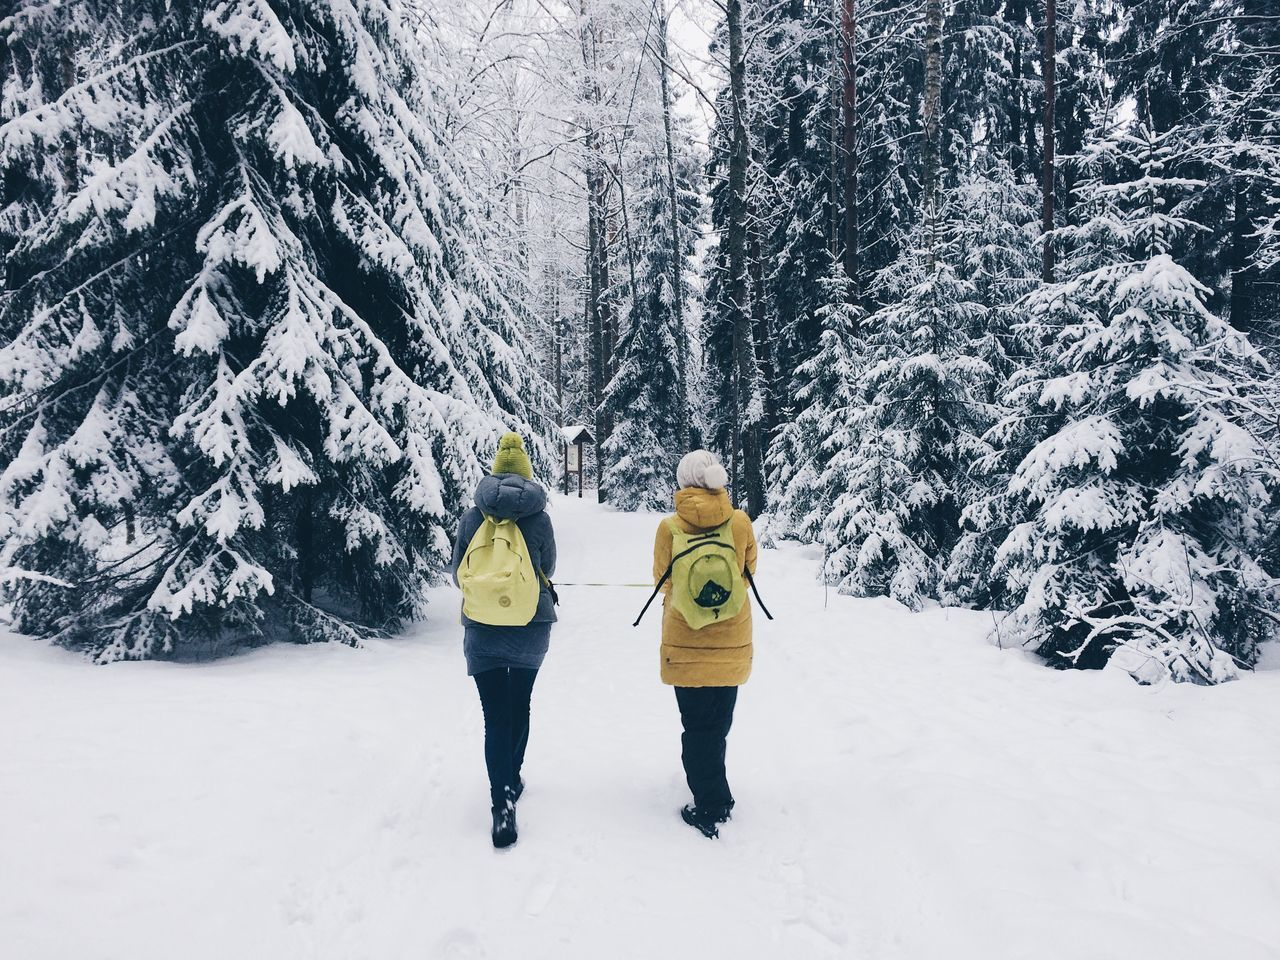 Adult Adults Only Beauty In Nature Cold Temperature Friendship Full Length Fun Headwear Leisure Activity Lifestyles Mature Adult Nature Outdoors People Recreational Pursuit Snow Sport Sports Clothing Togetherness Tree Two People Walking Winter Yellow Young Adult